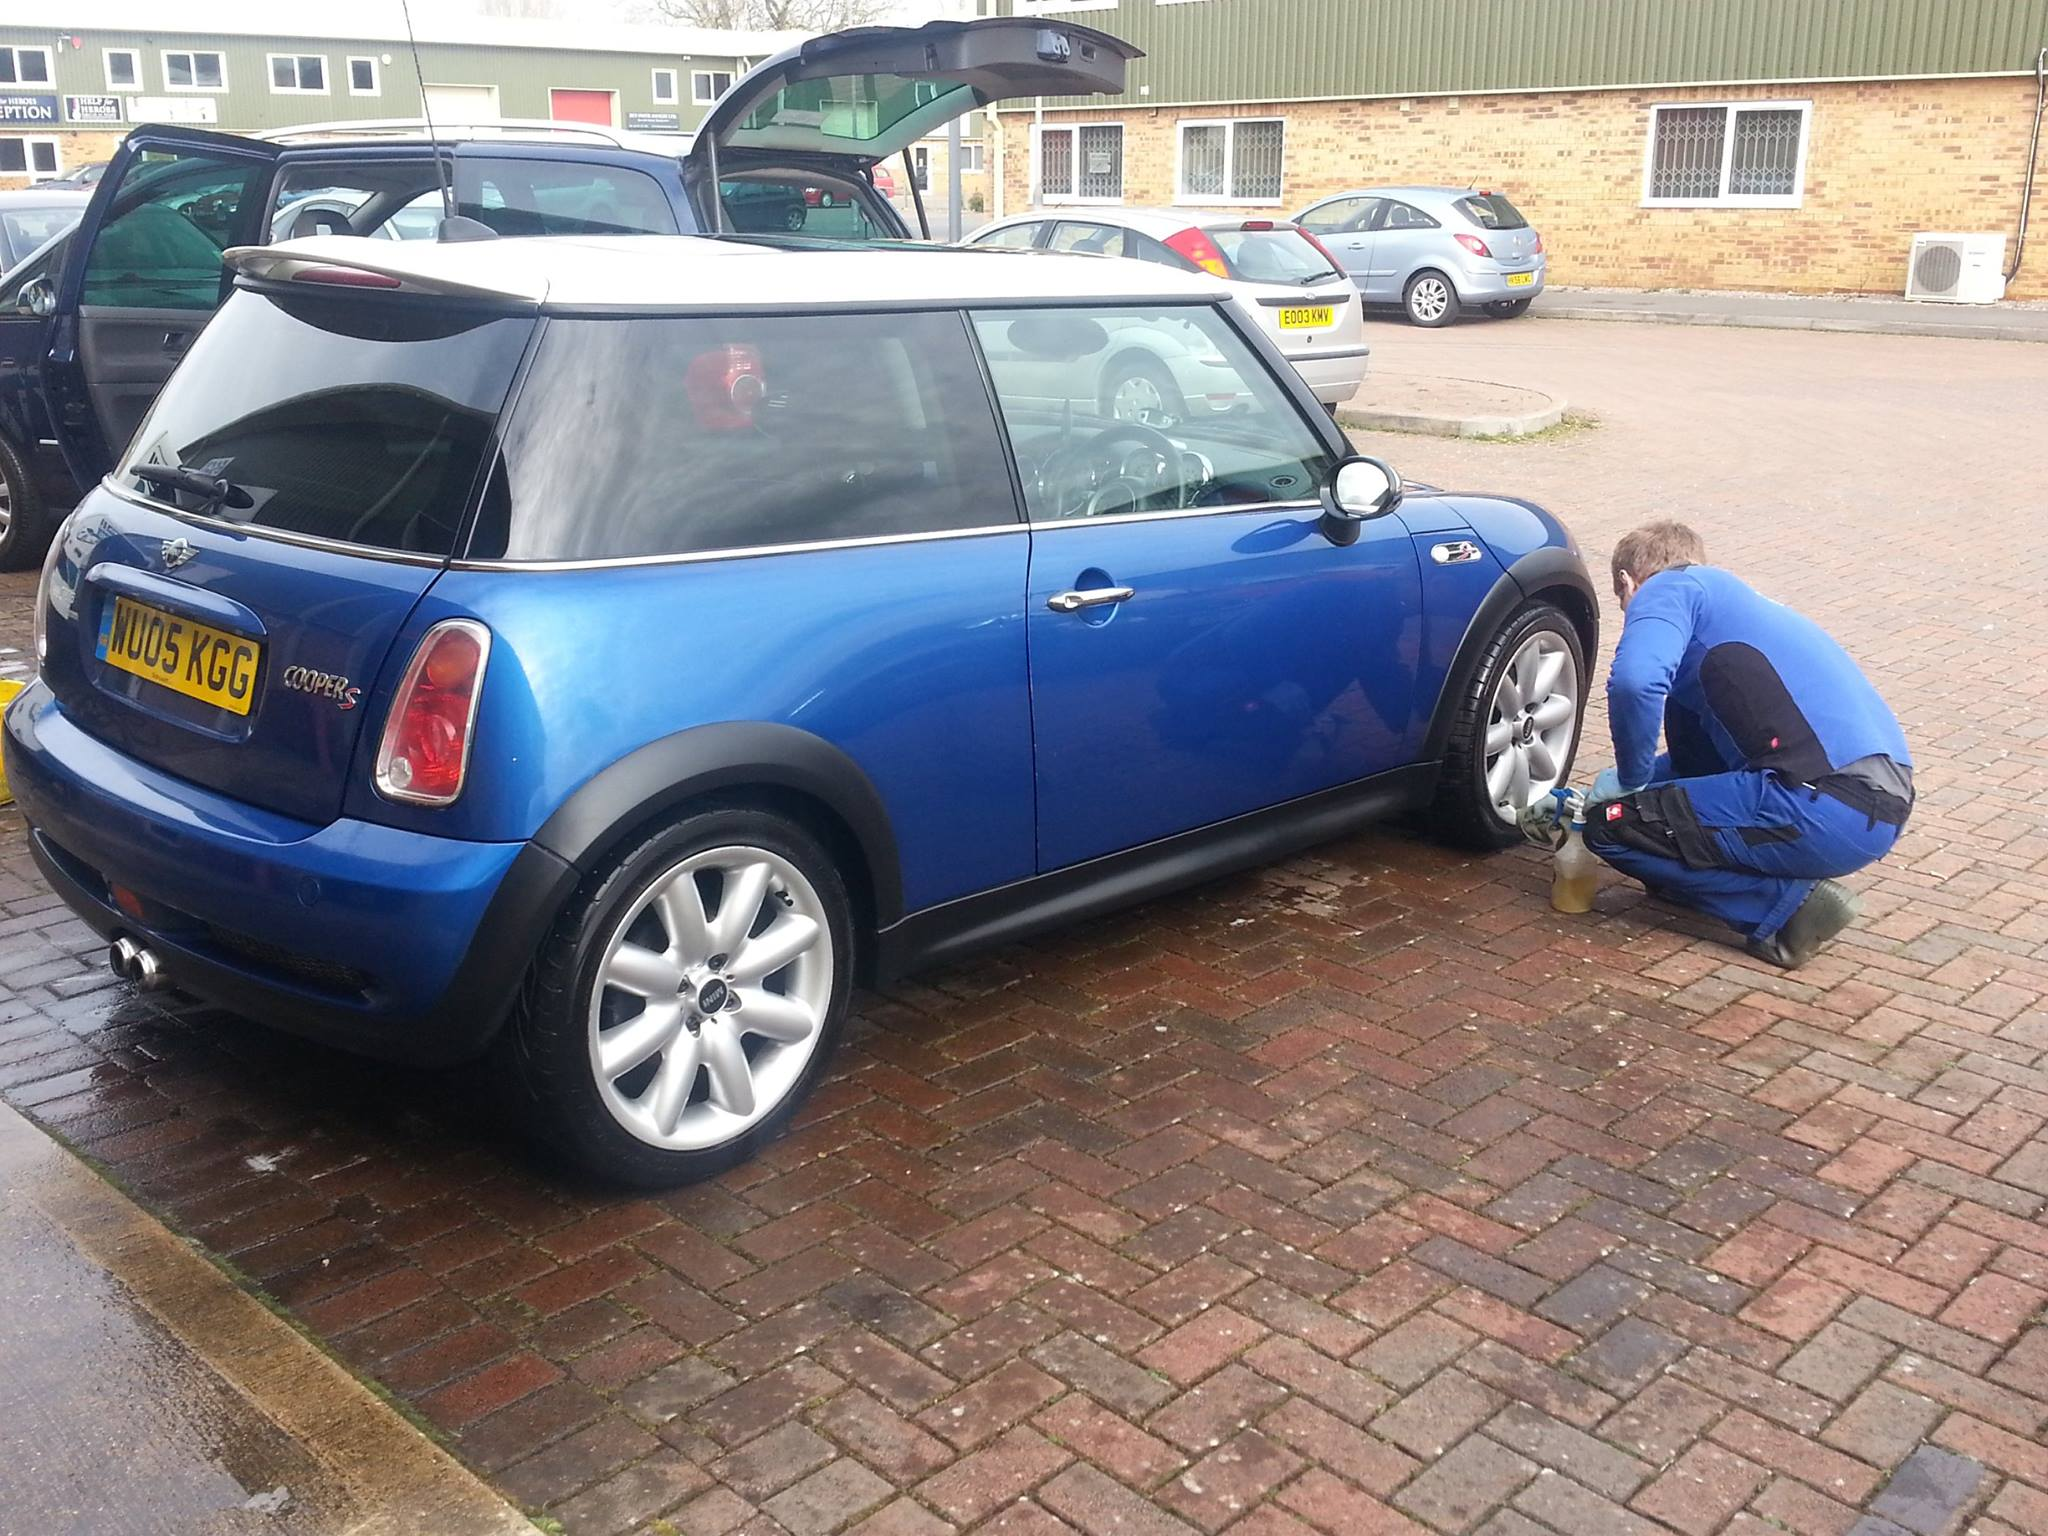 Cleaning the alloy wheels on this car in Shaftesbury